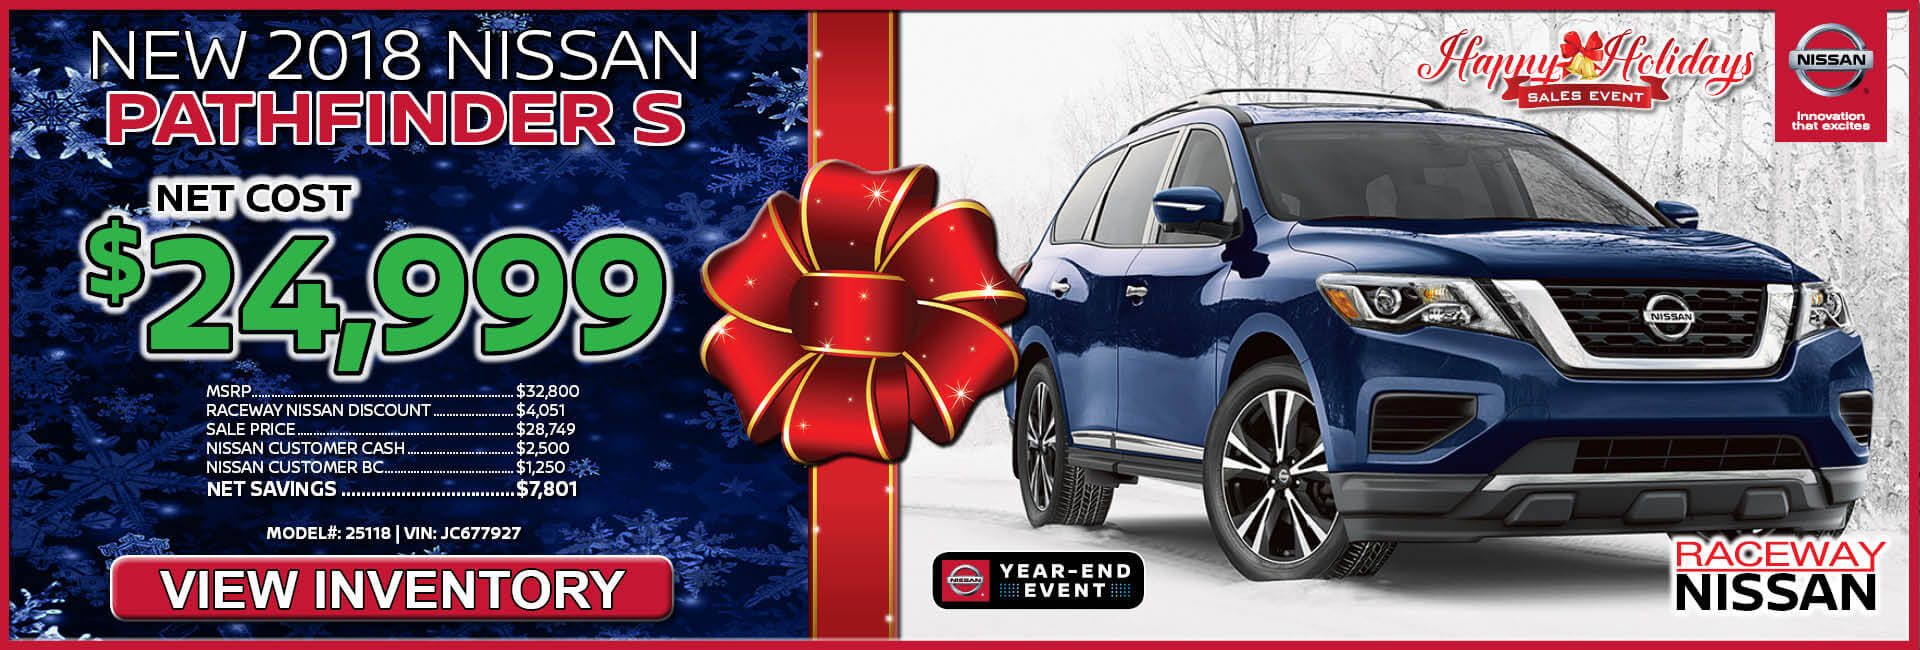 Nissan Pathfinder $24,999 Purchase